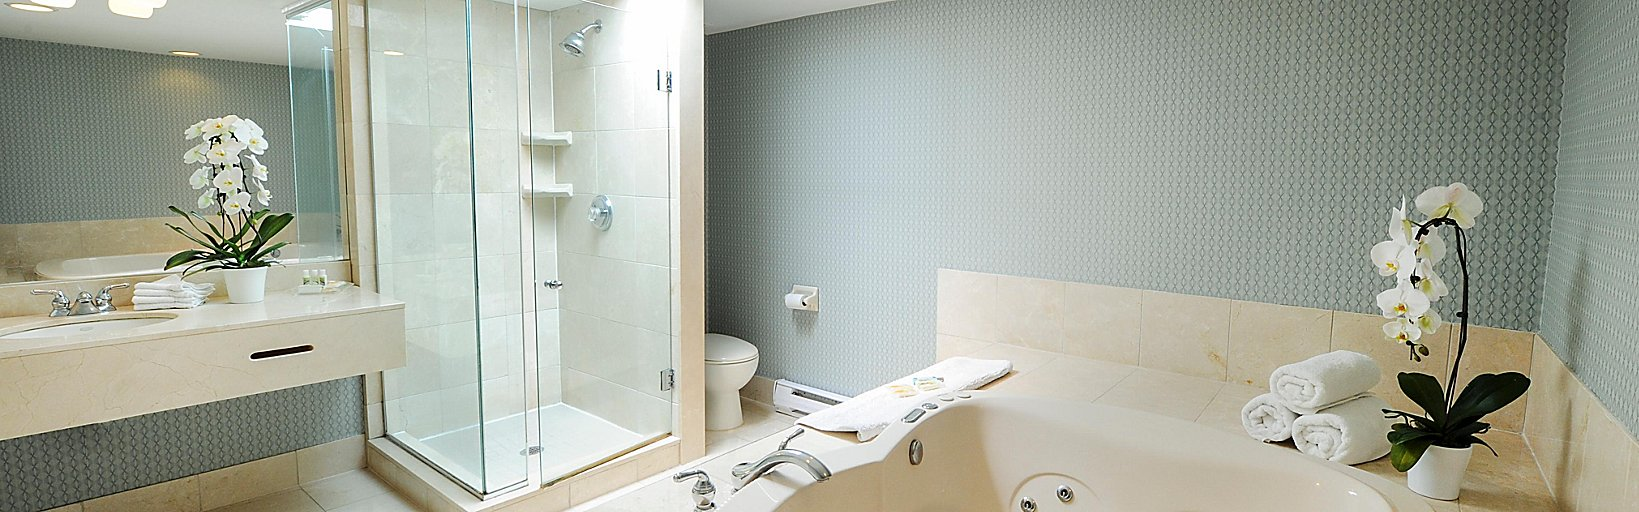 Holiday Inn Niagara Falls By The Falls Room Pictures Amenities